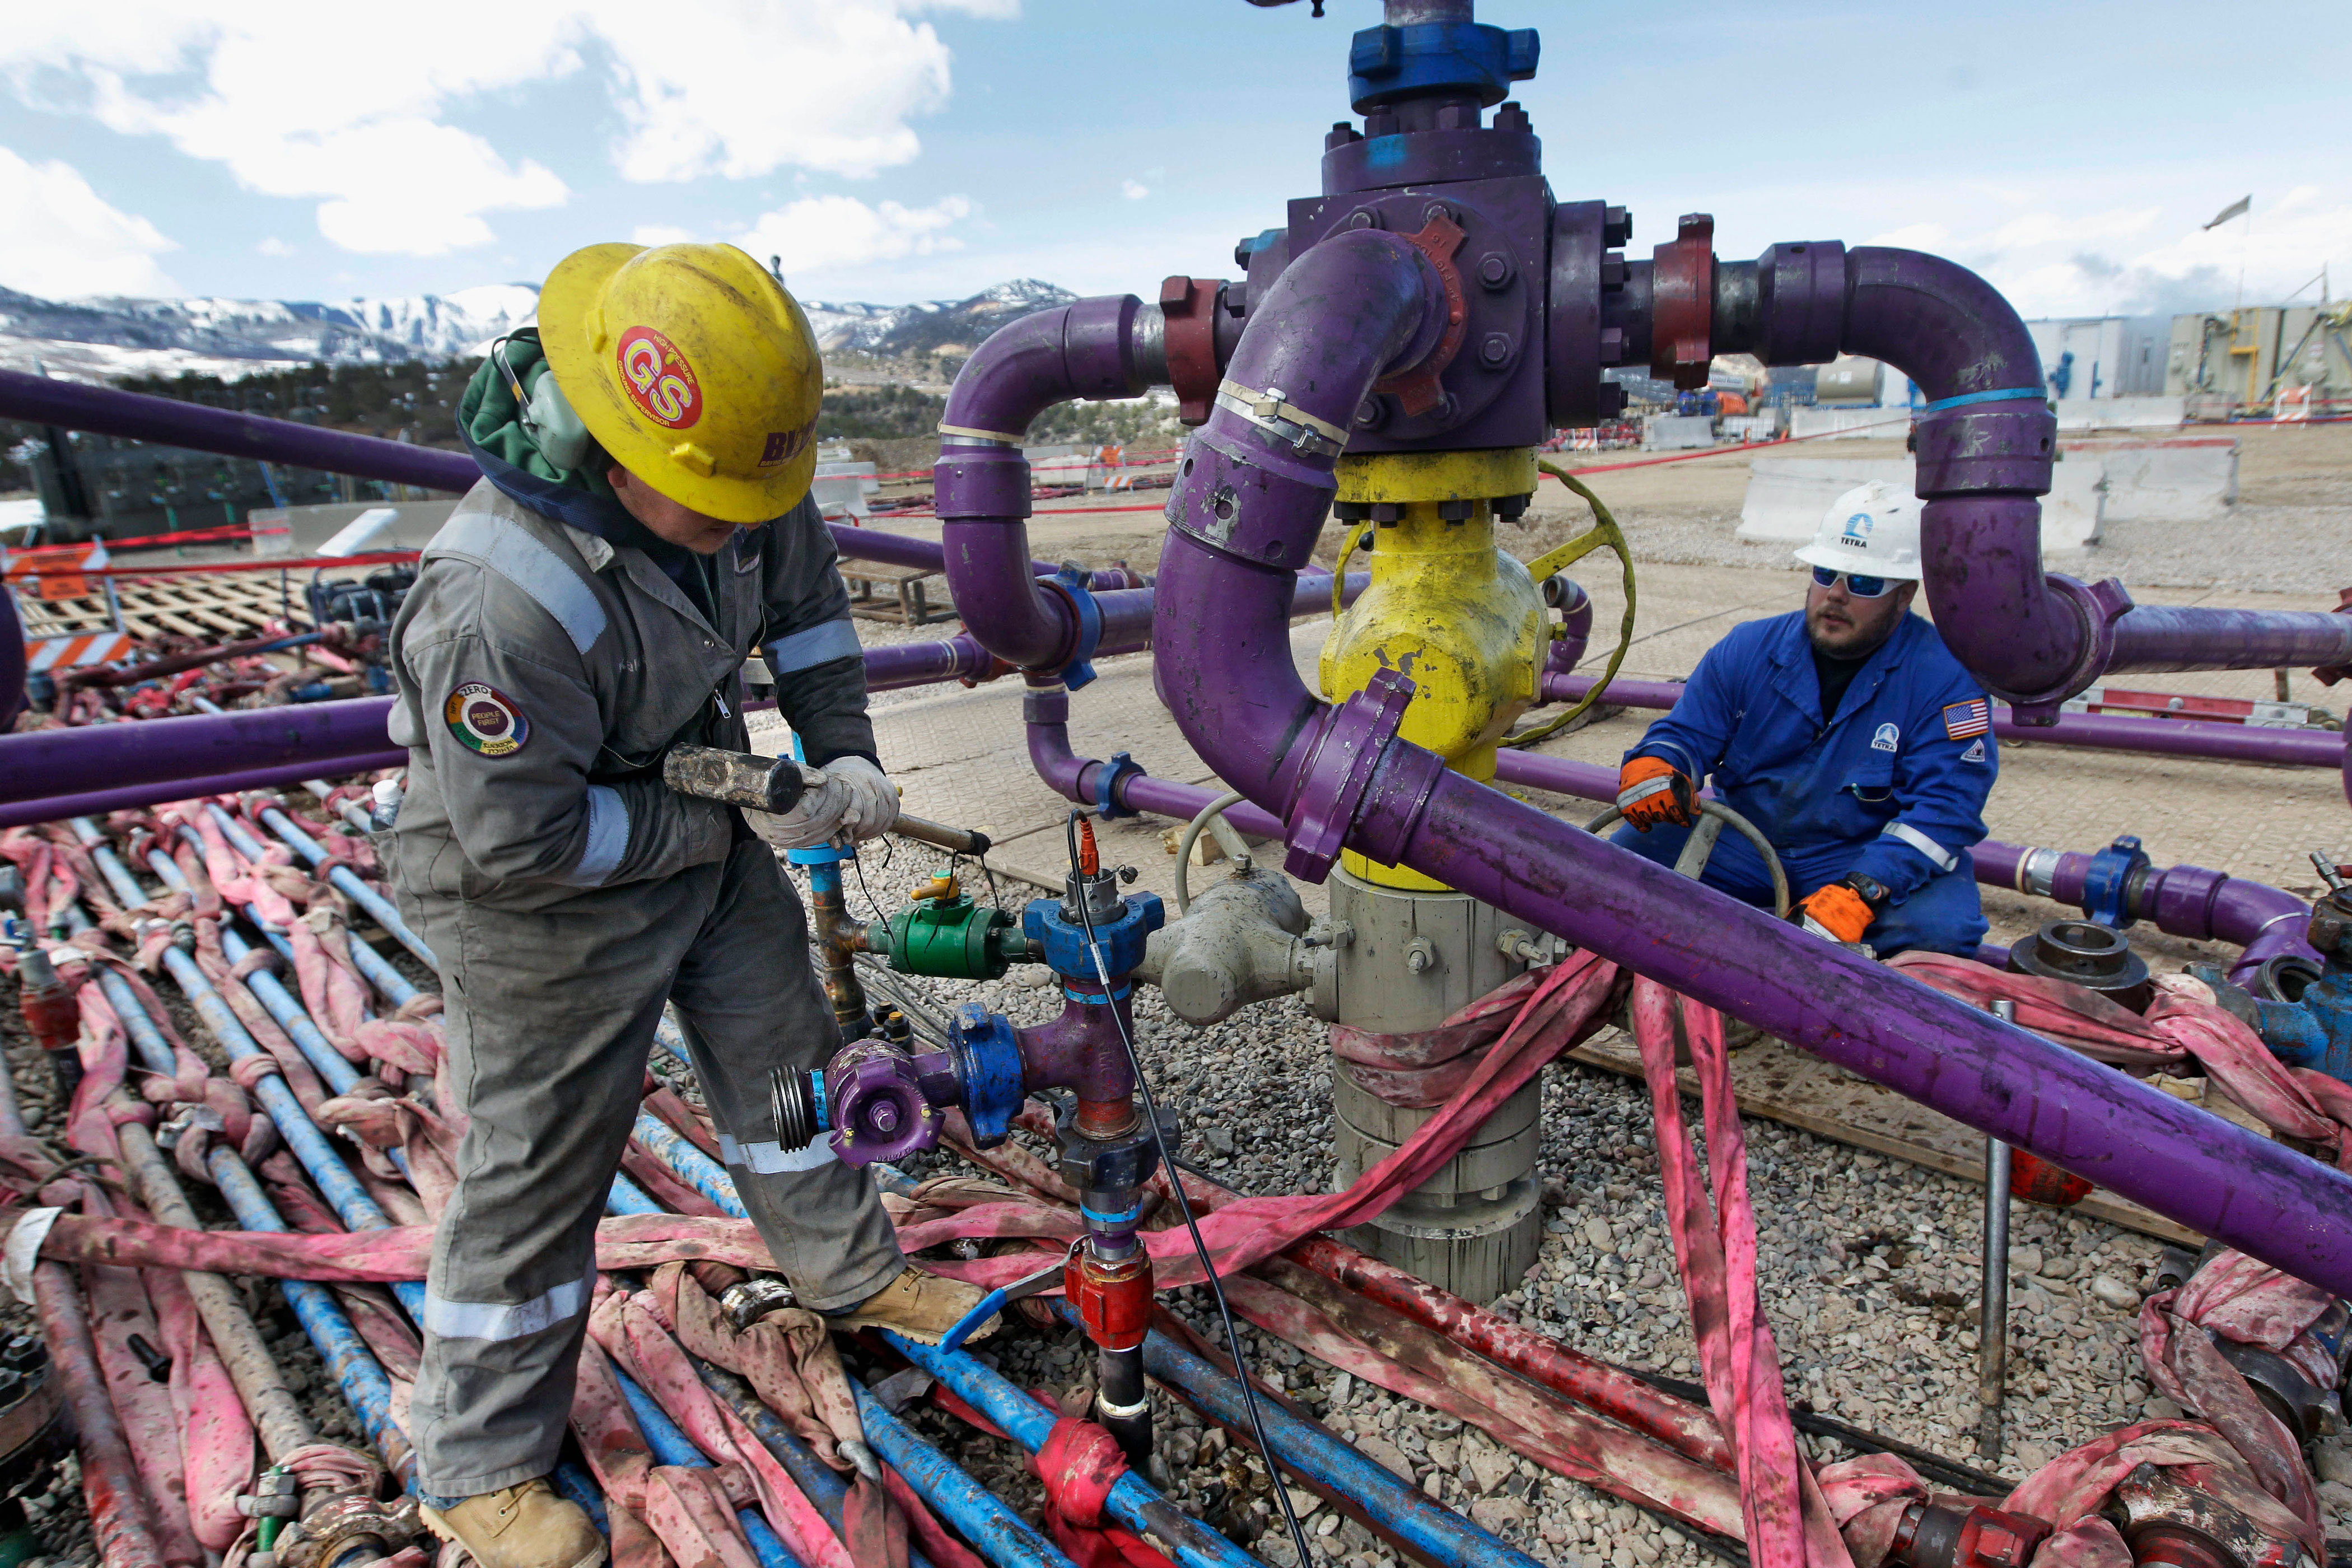 """<p>Workers tend to a well head during a hydraulic fracturing operation outside Rifle, in western Colorado,<span style=""""color: rgb(64, 69, 64);"""">March 29, 2013.</span></p>"""